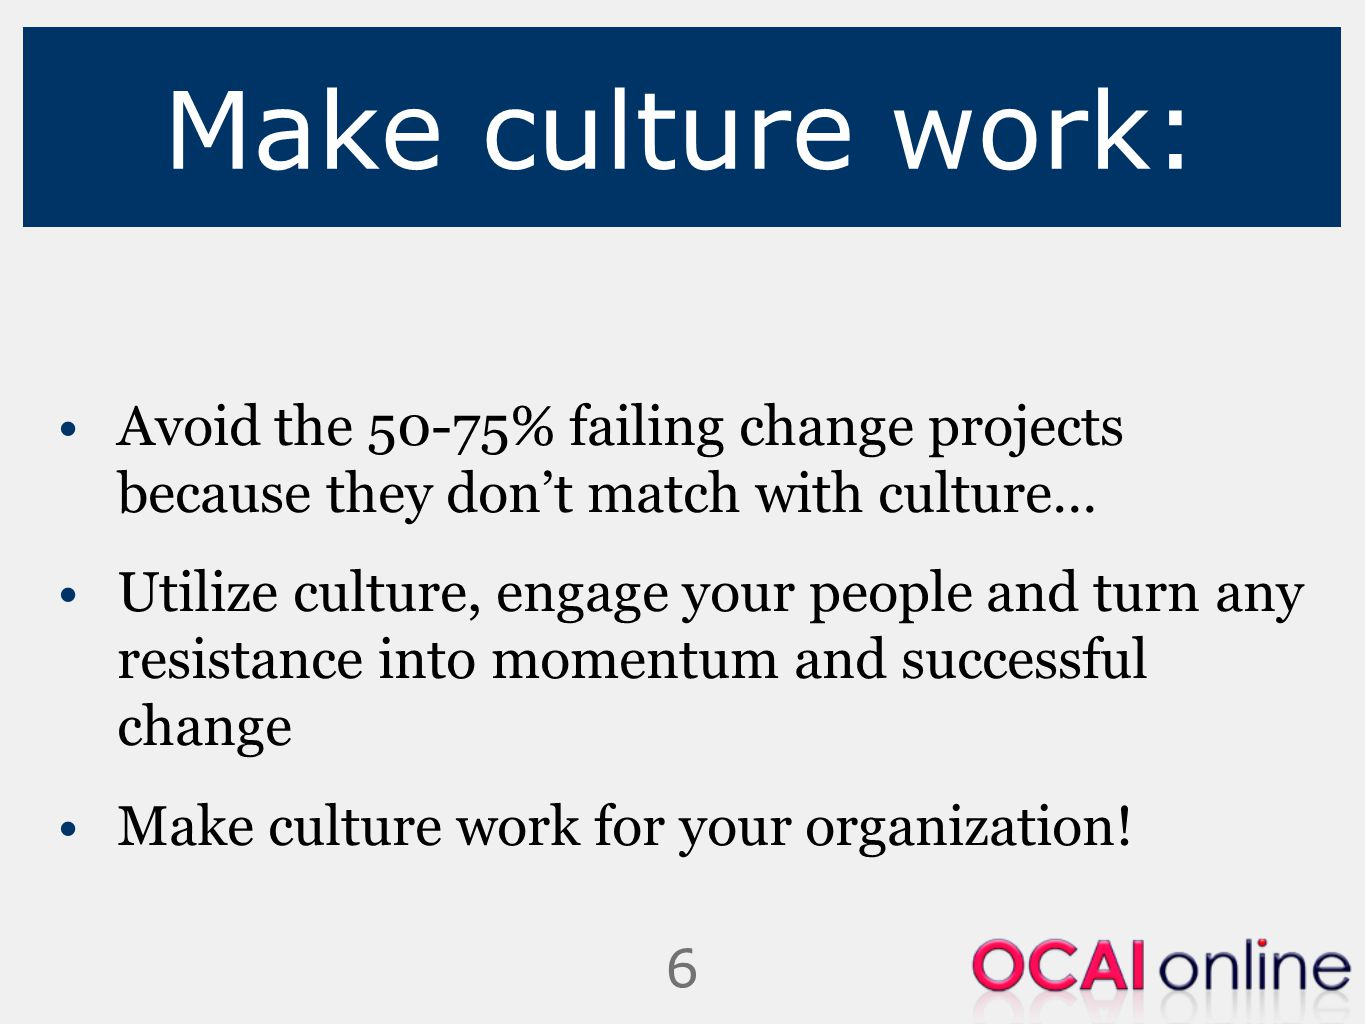 6 Make culture work: Avoid the 50-75% failing change projects because they don't match with culture… Utilize culture, engage your people and turn any